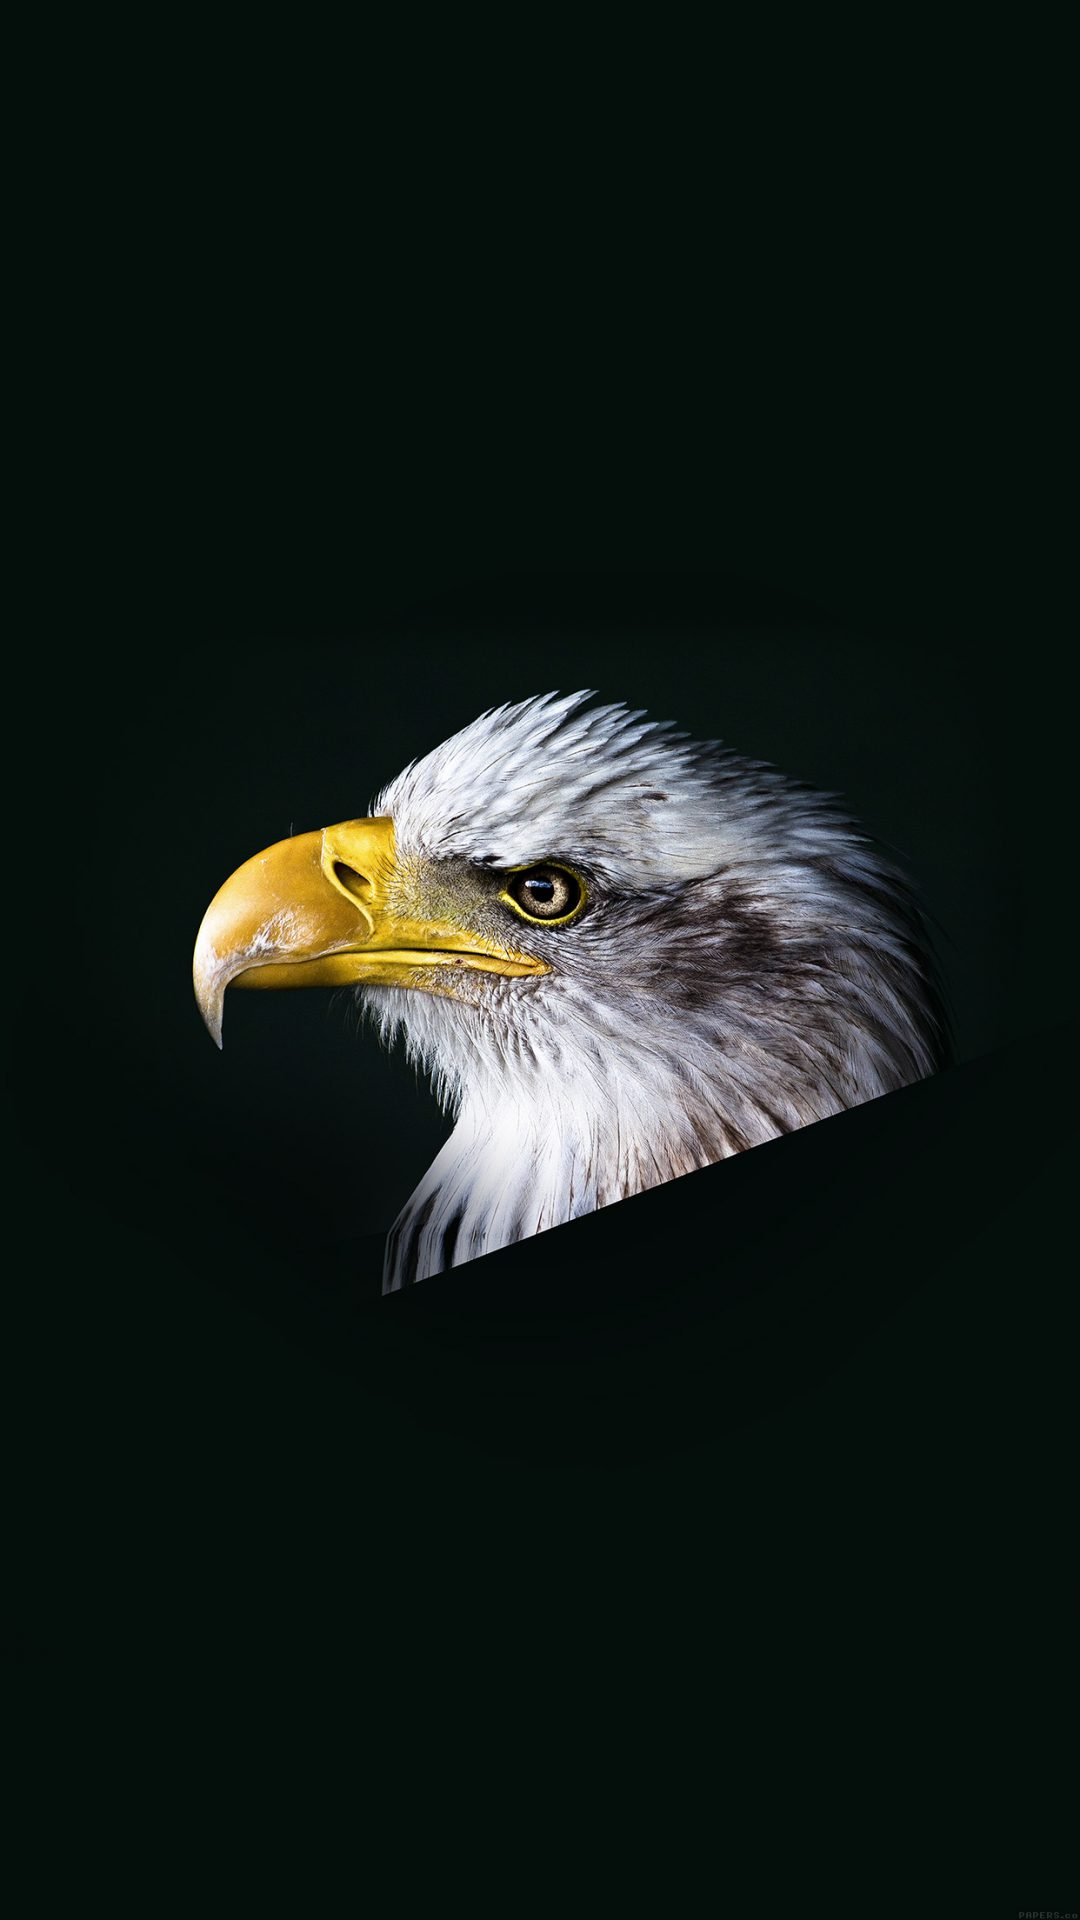 Eagle Dark Animal Bird Face